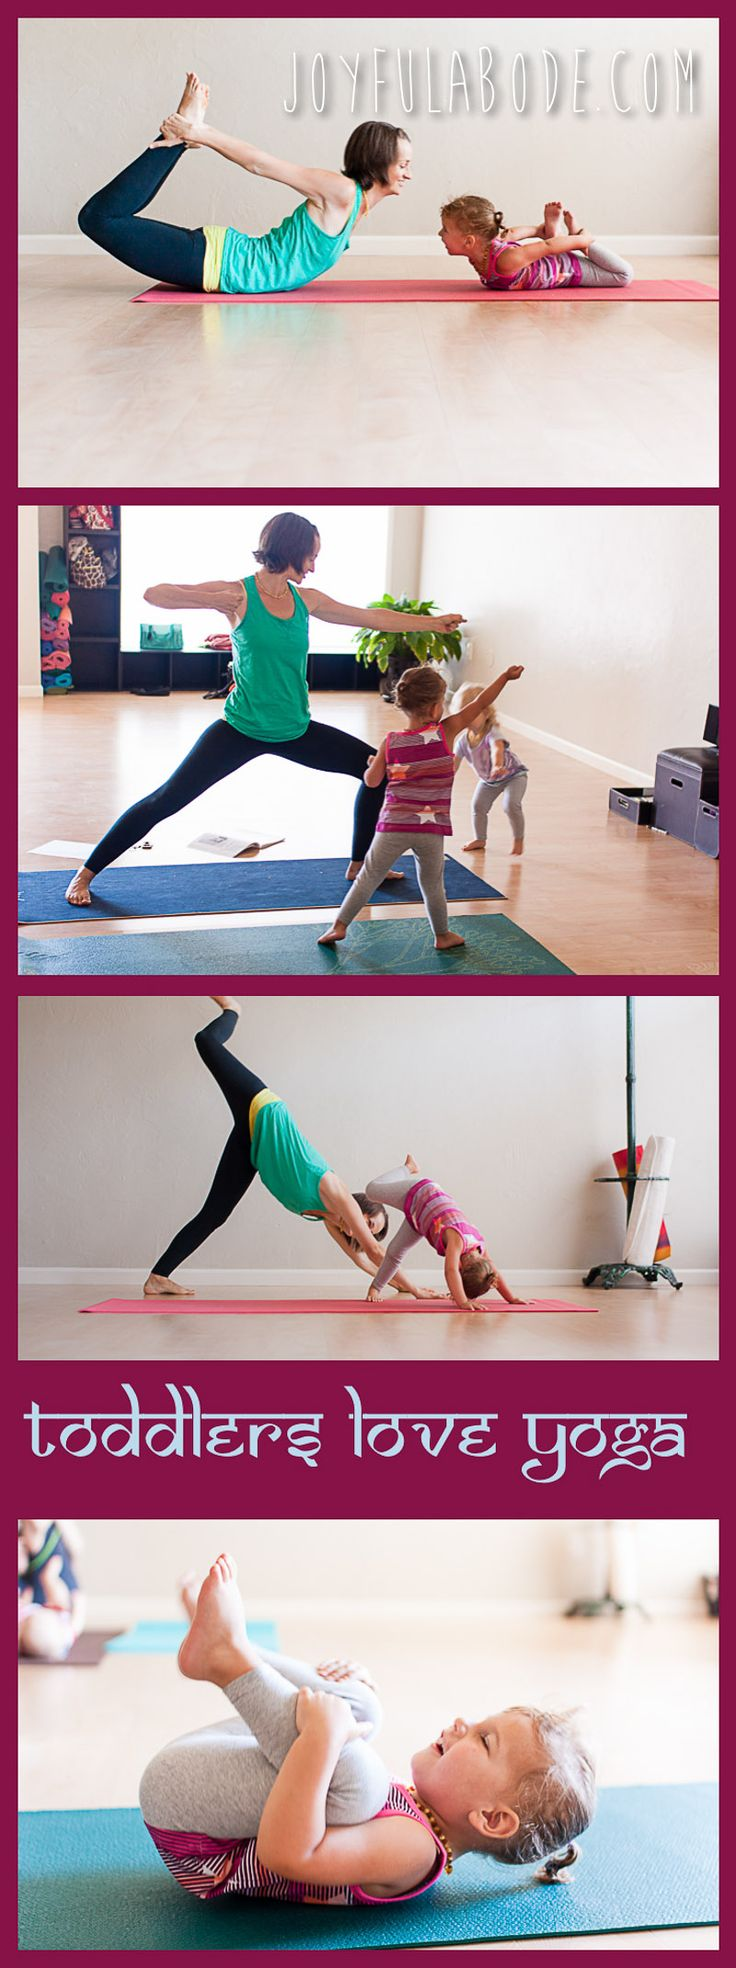 Need to find a toddler yoga class! Would love to do this with my girls.